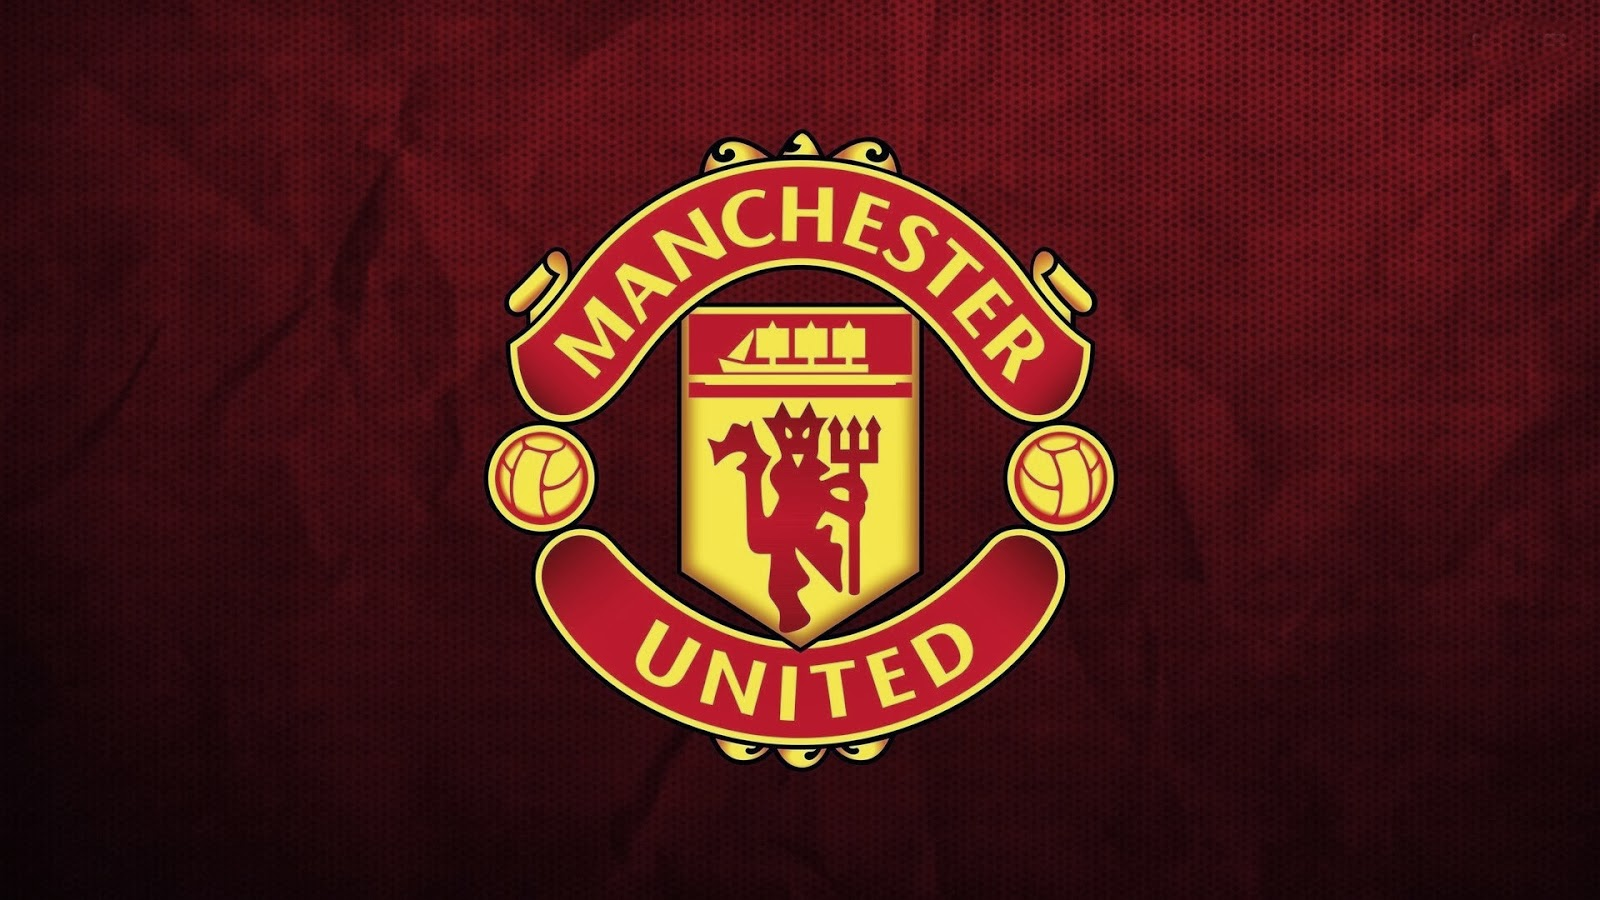 Manchester united hd wallpapers 2015 wallpapersafari - Manchester united latest wallpapers hd ...